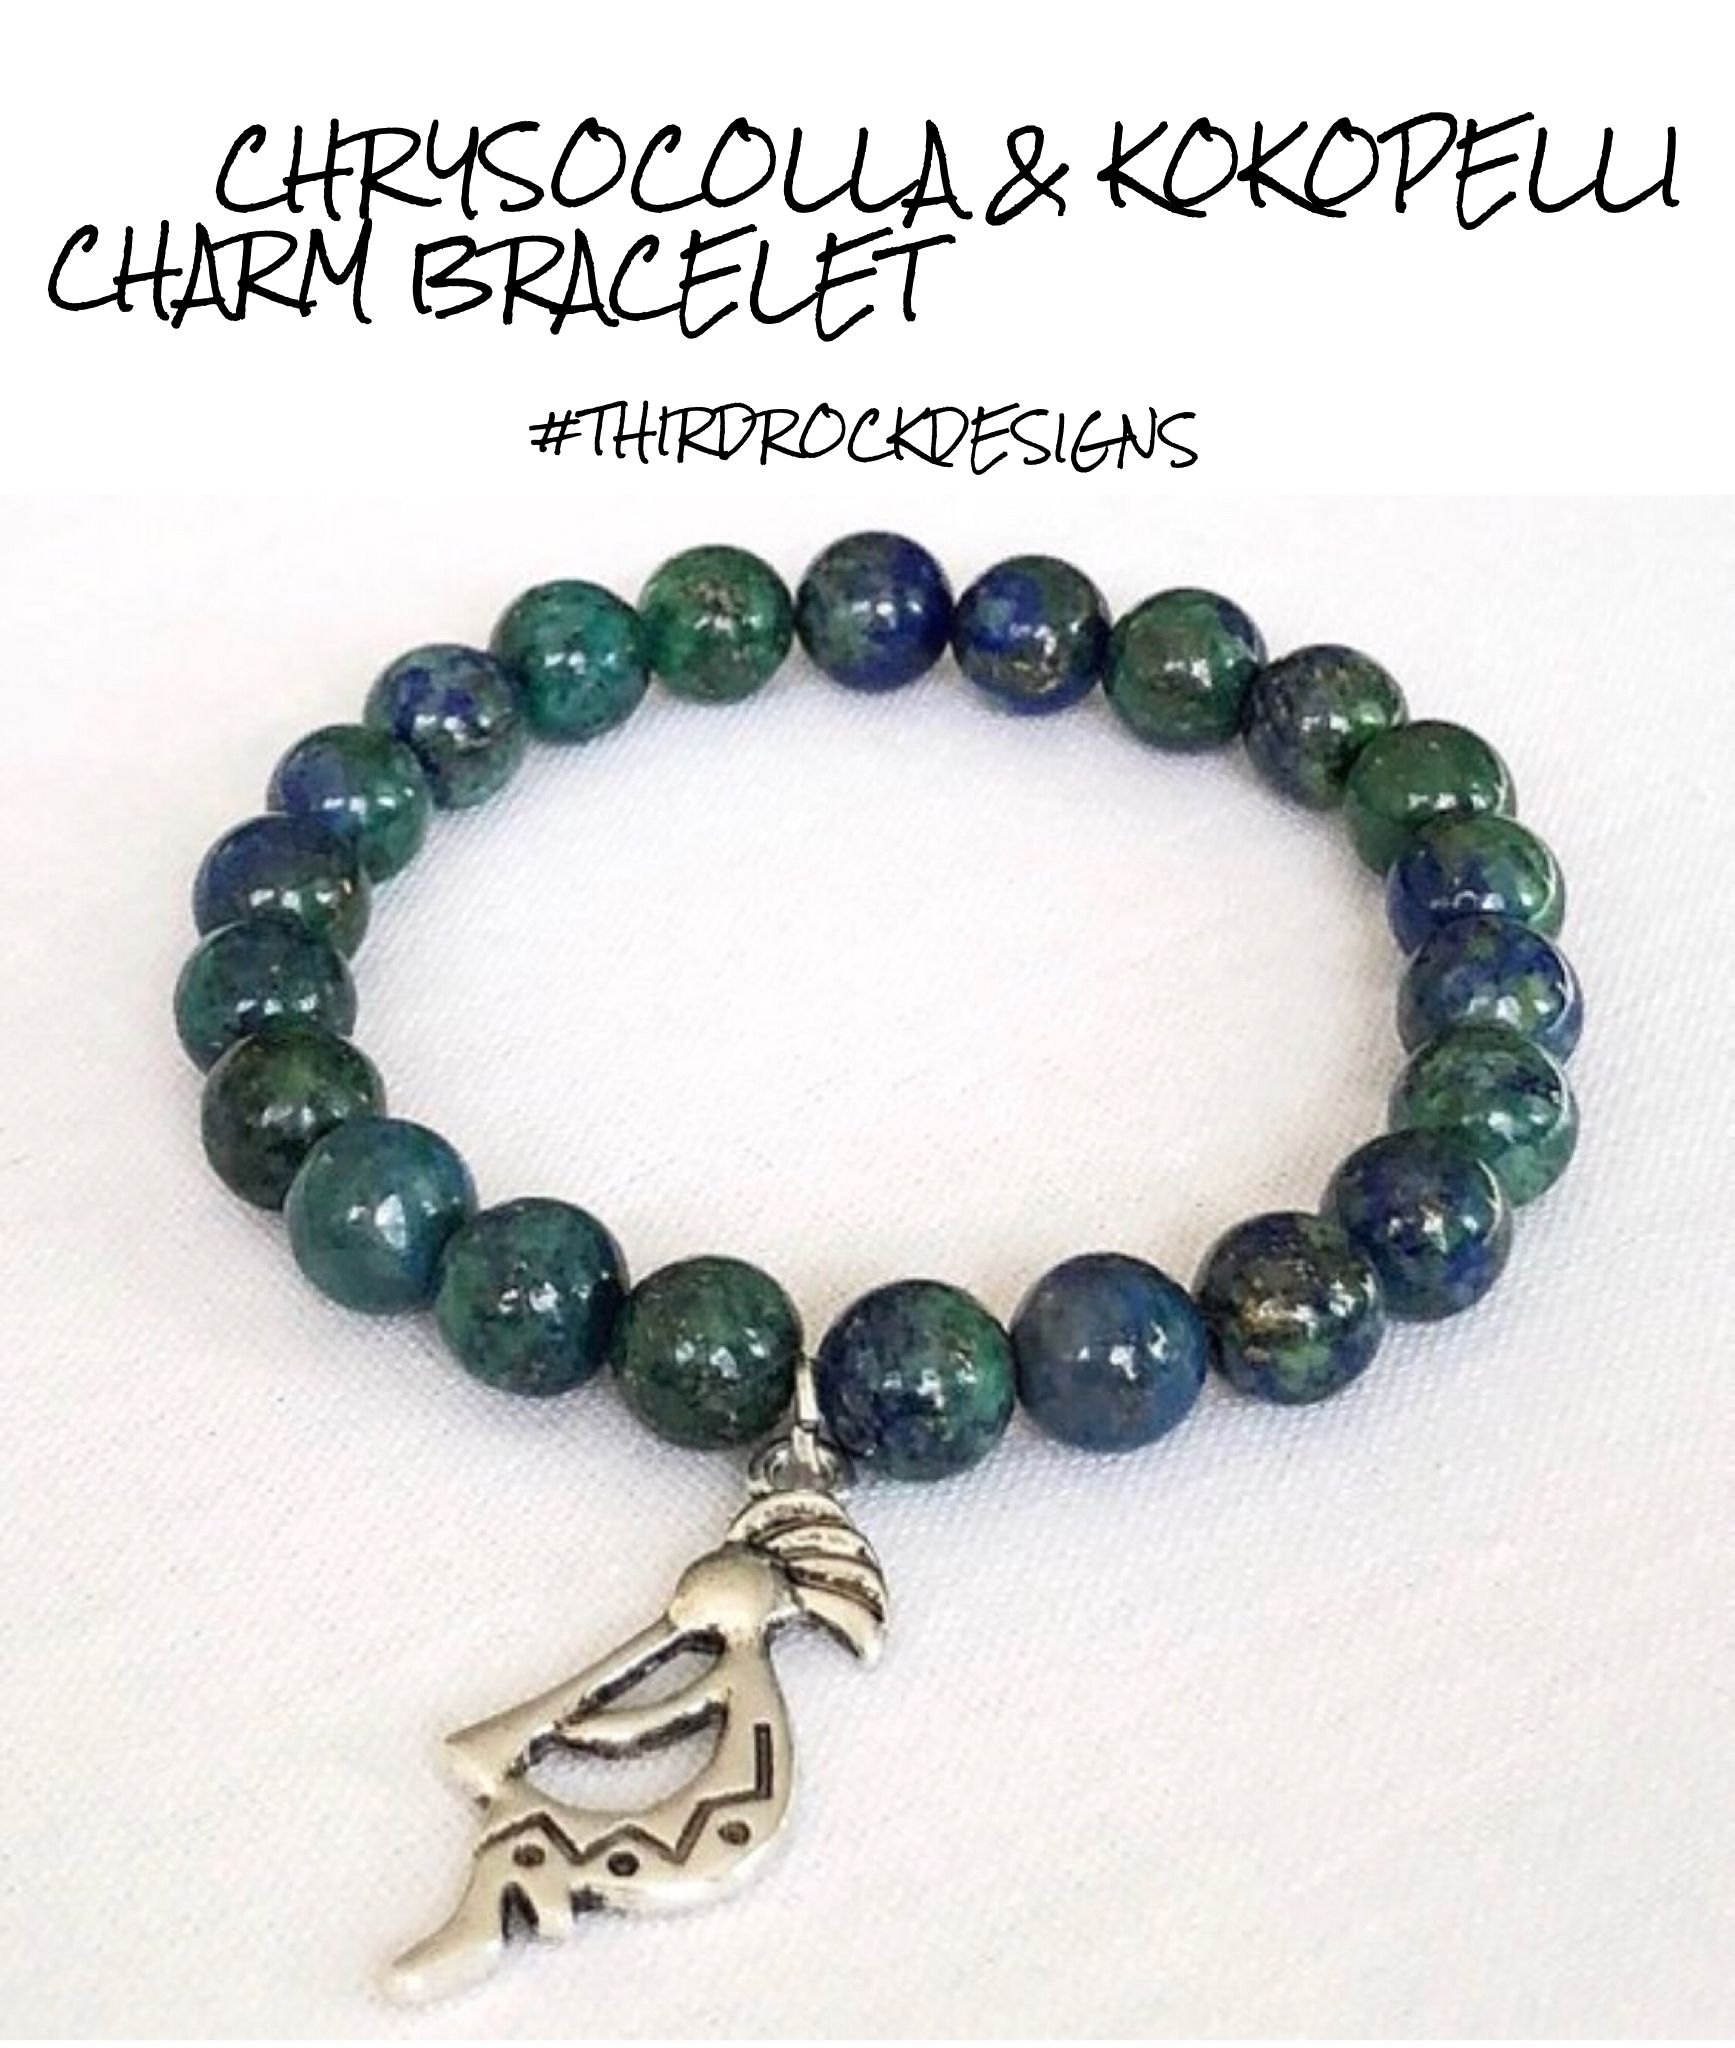 Awesome Bracelet With Good Vibes Carry The Amazing Energy Of Chrysocolla Kokopelli Everywhere You Go Custom Sizes Available Free Shipping On Domestic